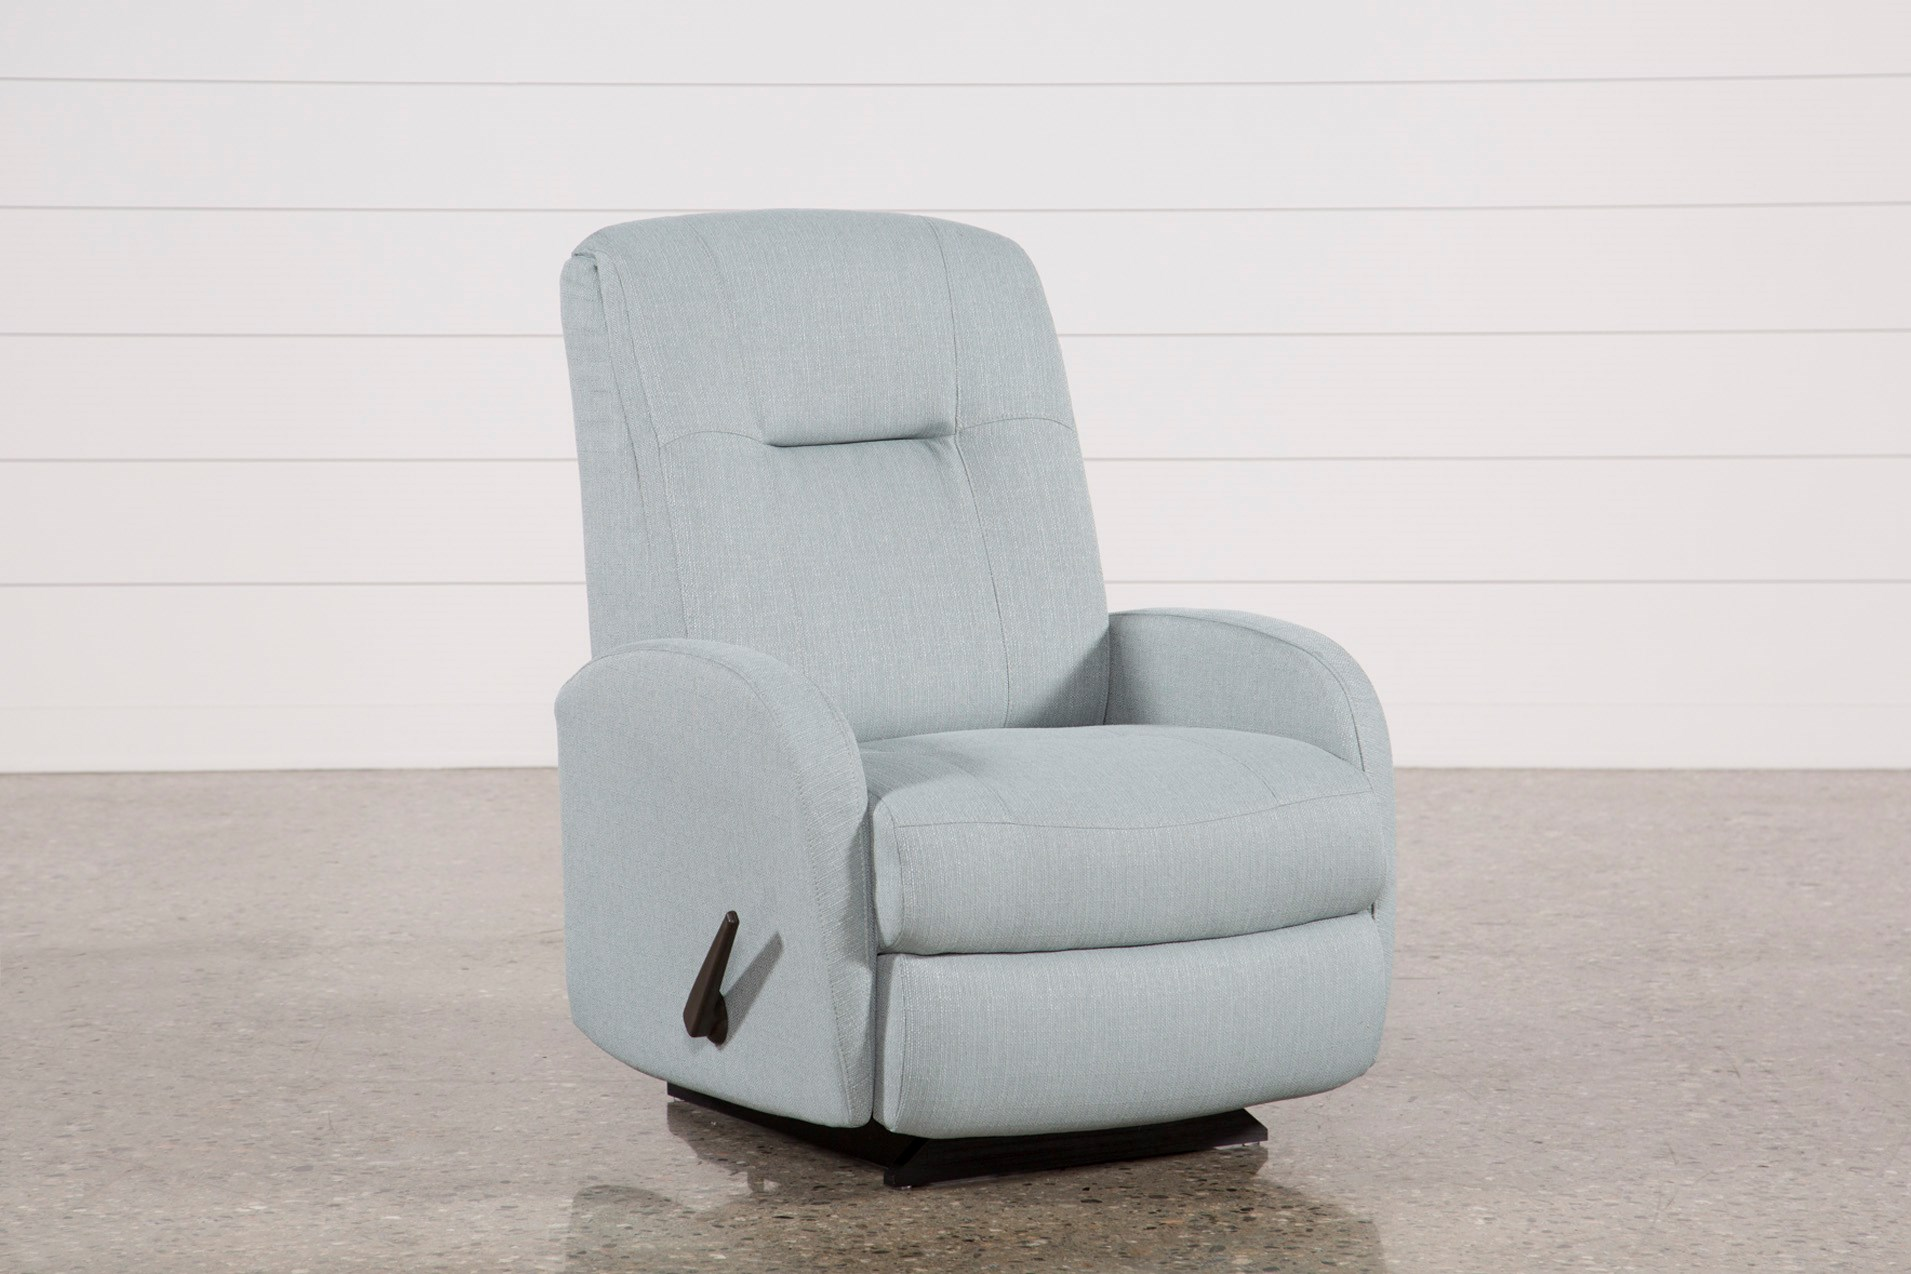 Rocker Recliner for Your Home & Office | Living Spaces